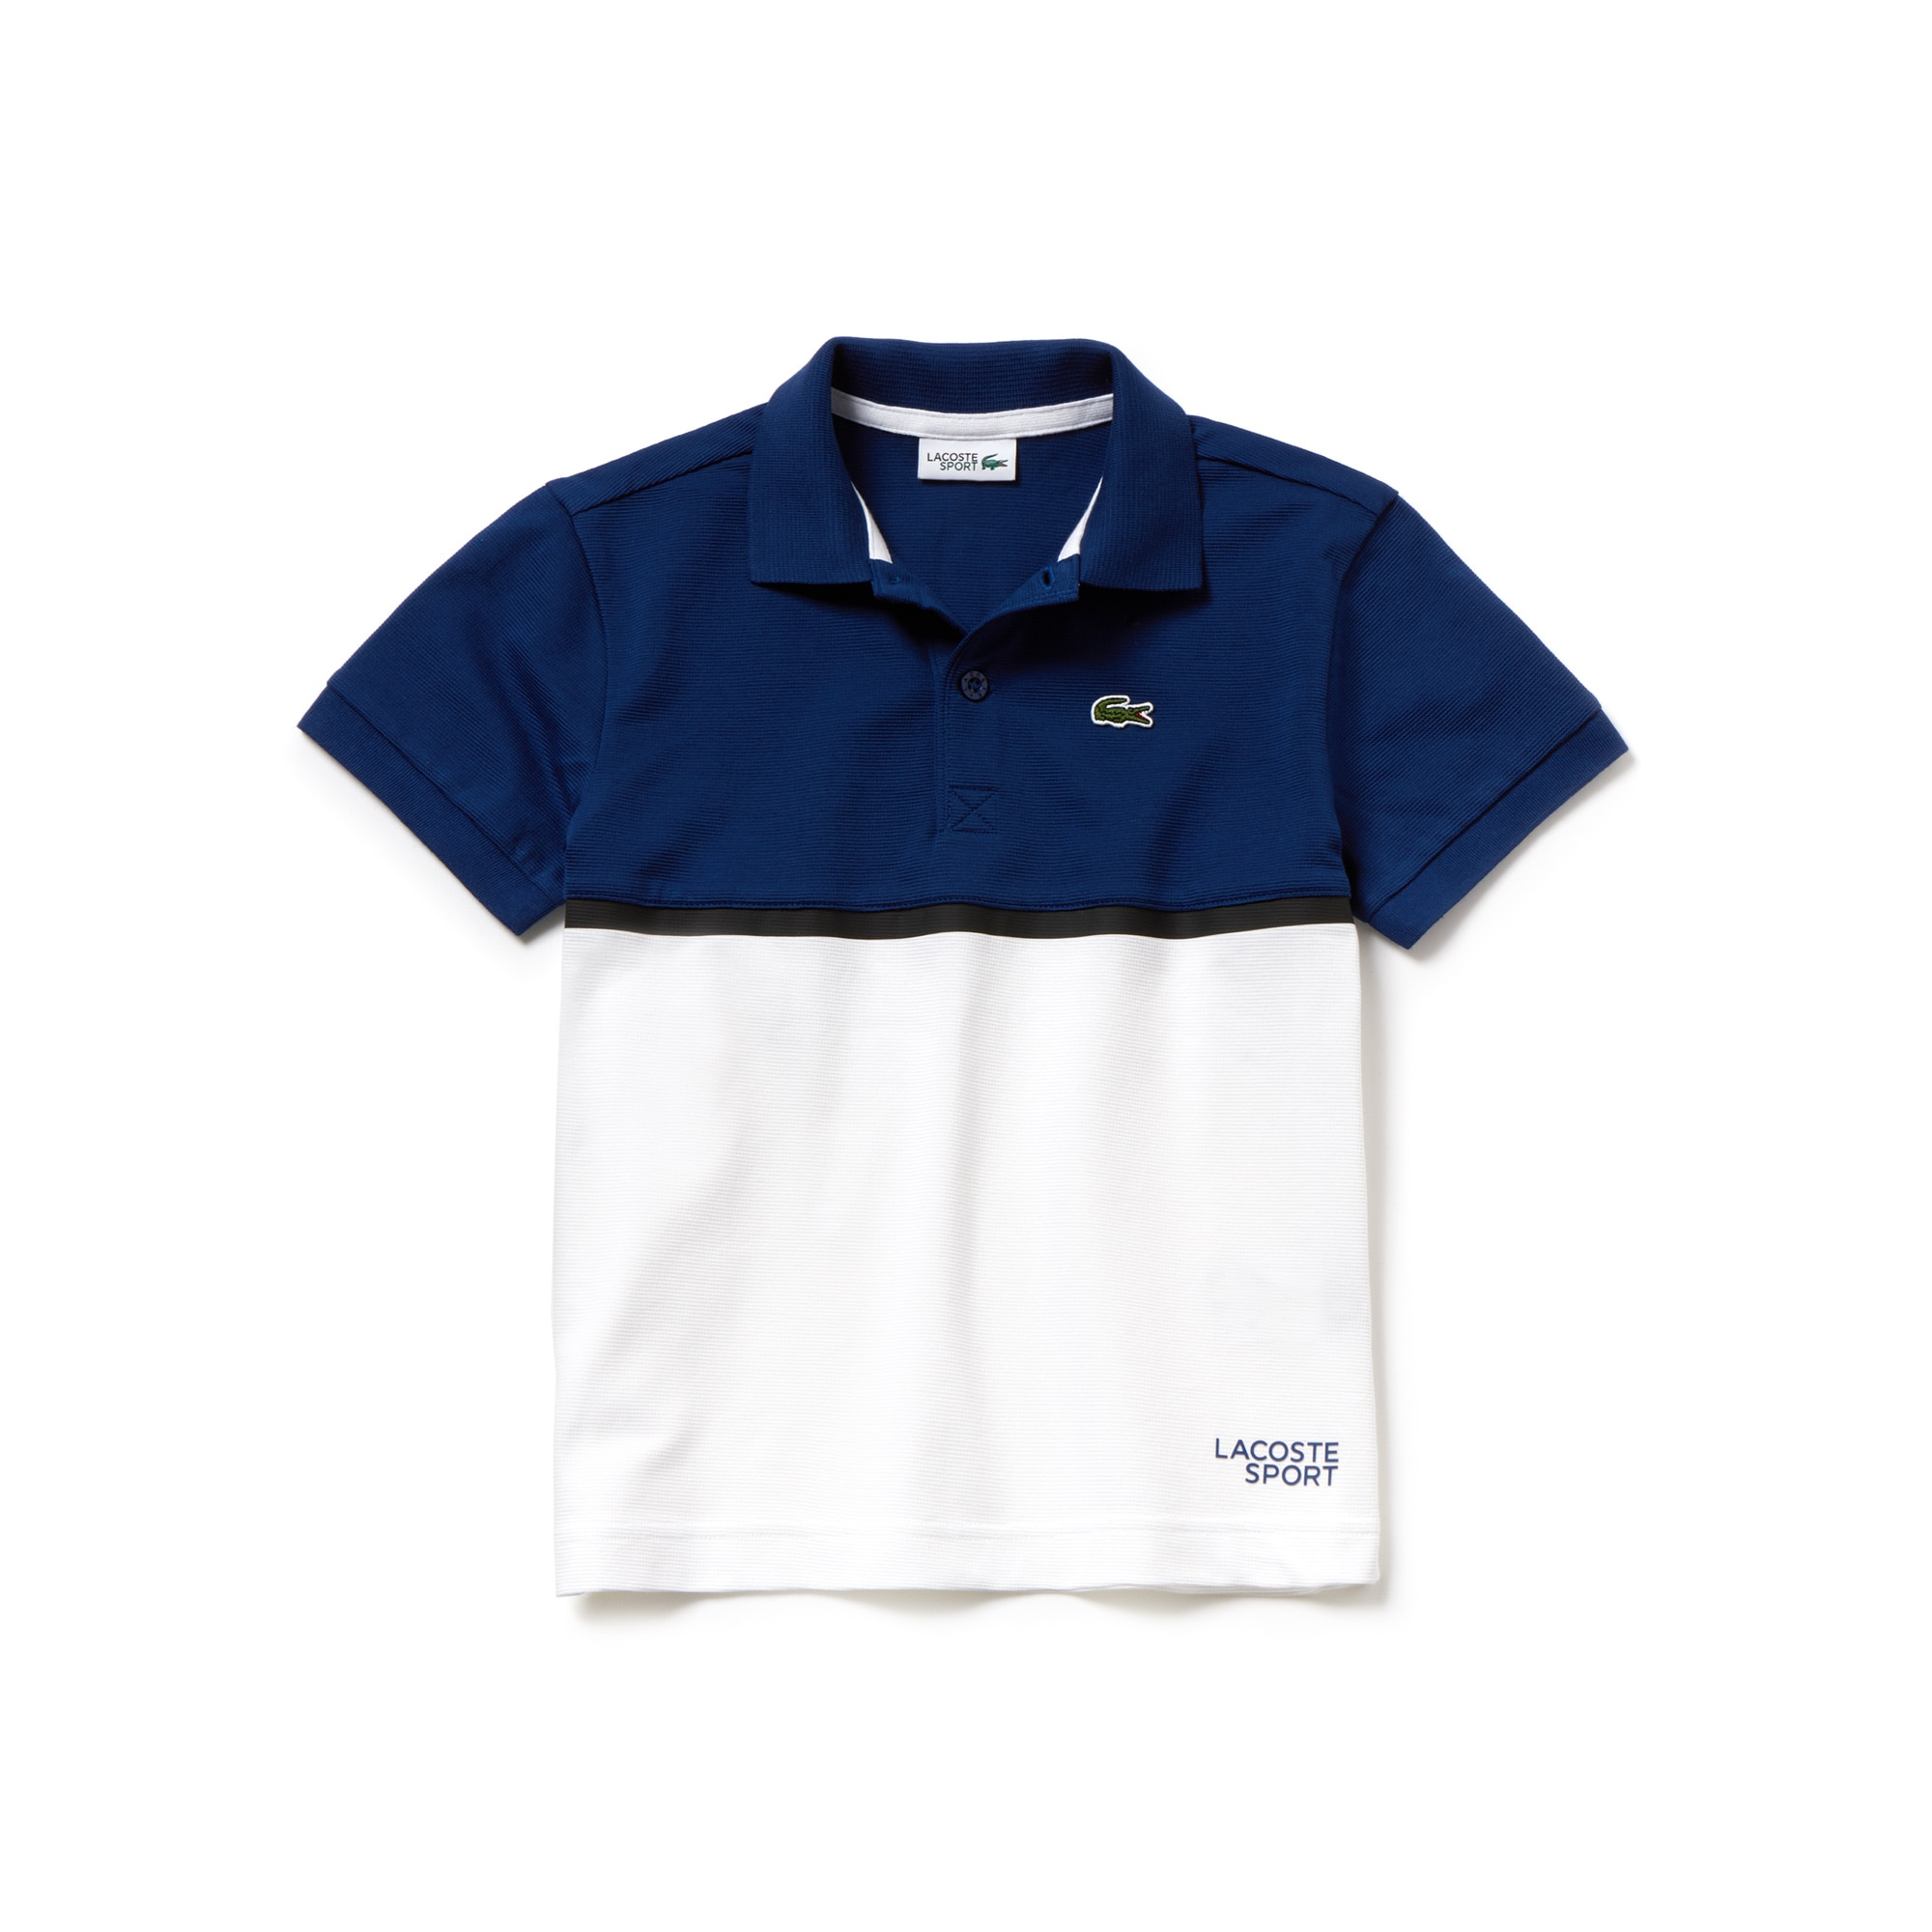 Boys' Lacoste SPORT Colorblock Ultra-Light Cotton Tennis Polo